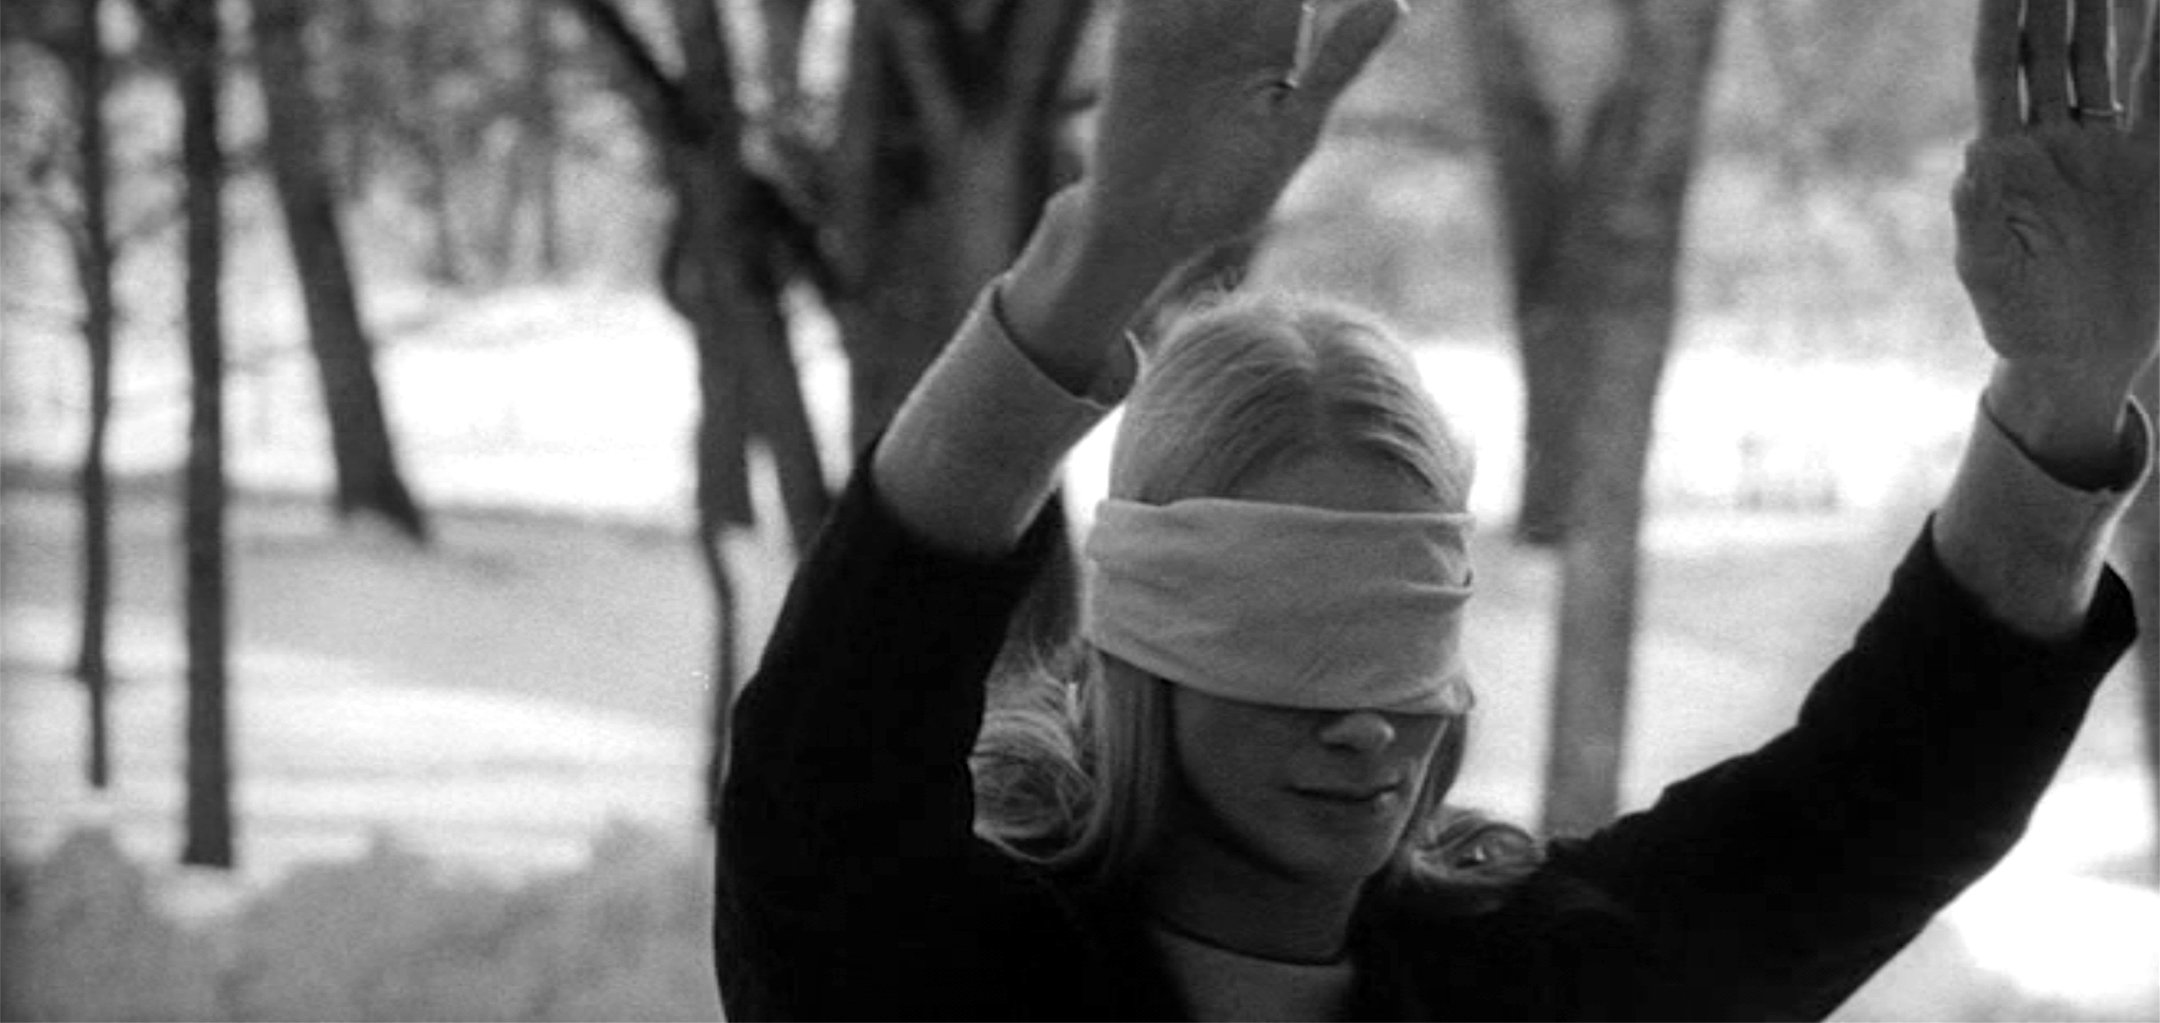 Ingrid Thulin as Irene, blindfolded with her arms out in a forest in a still from Night Games (1966)